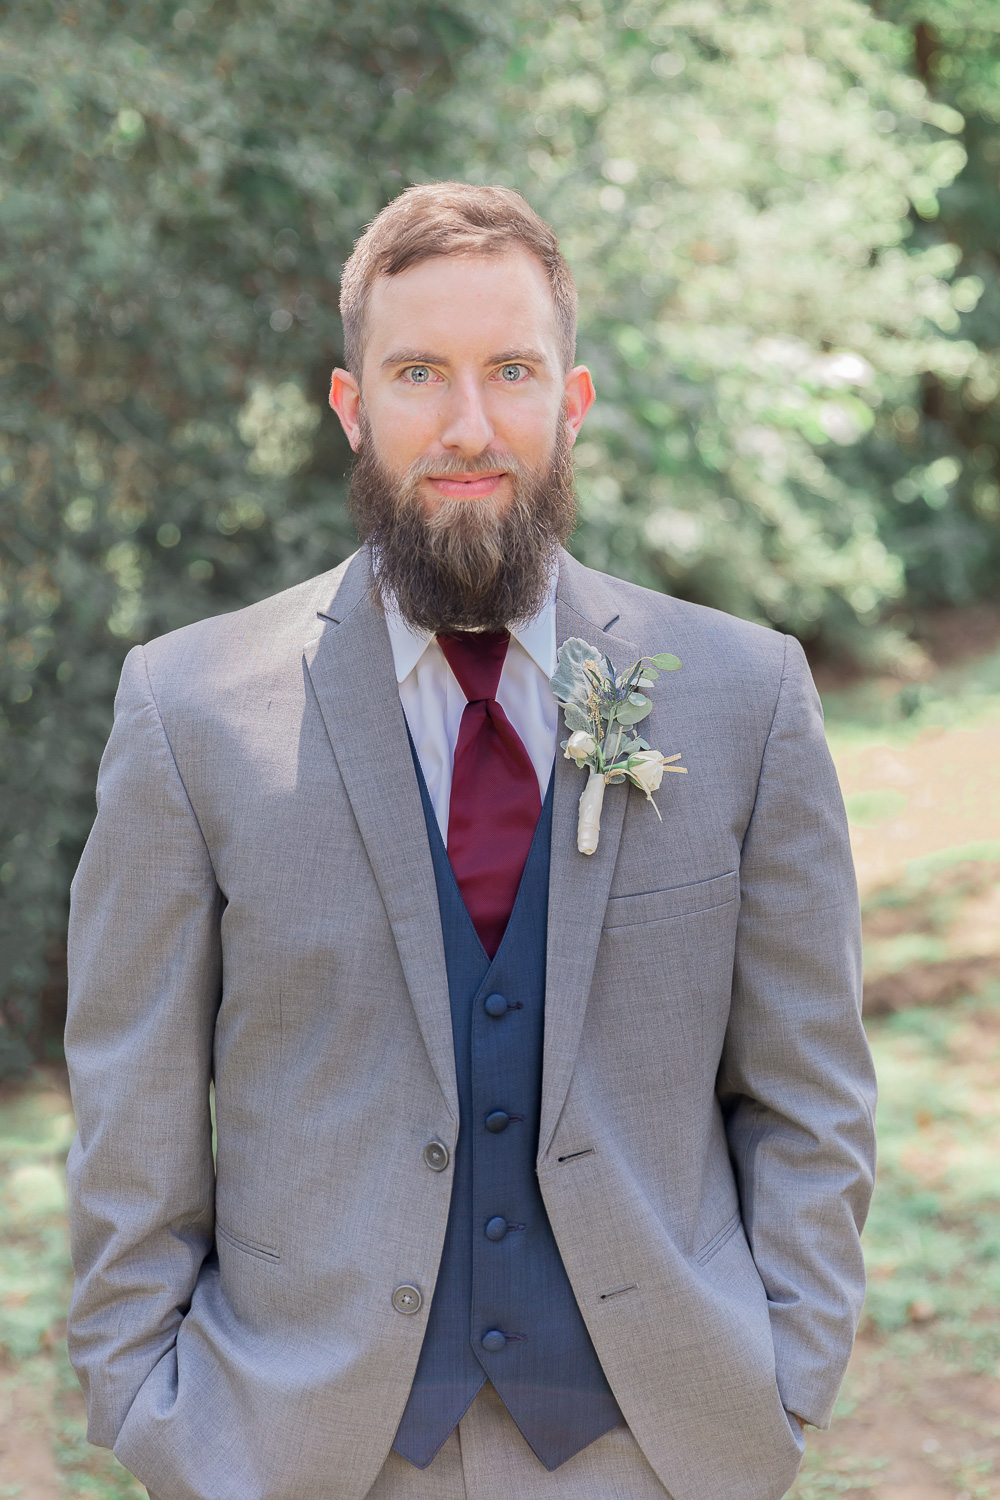 Annie Elise Photography | Groom Portrait Outdoors